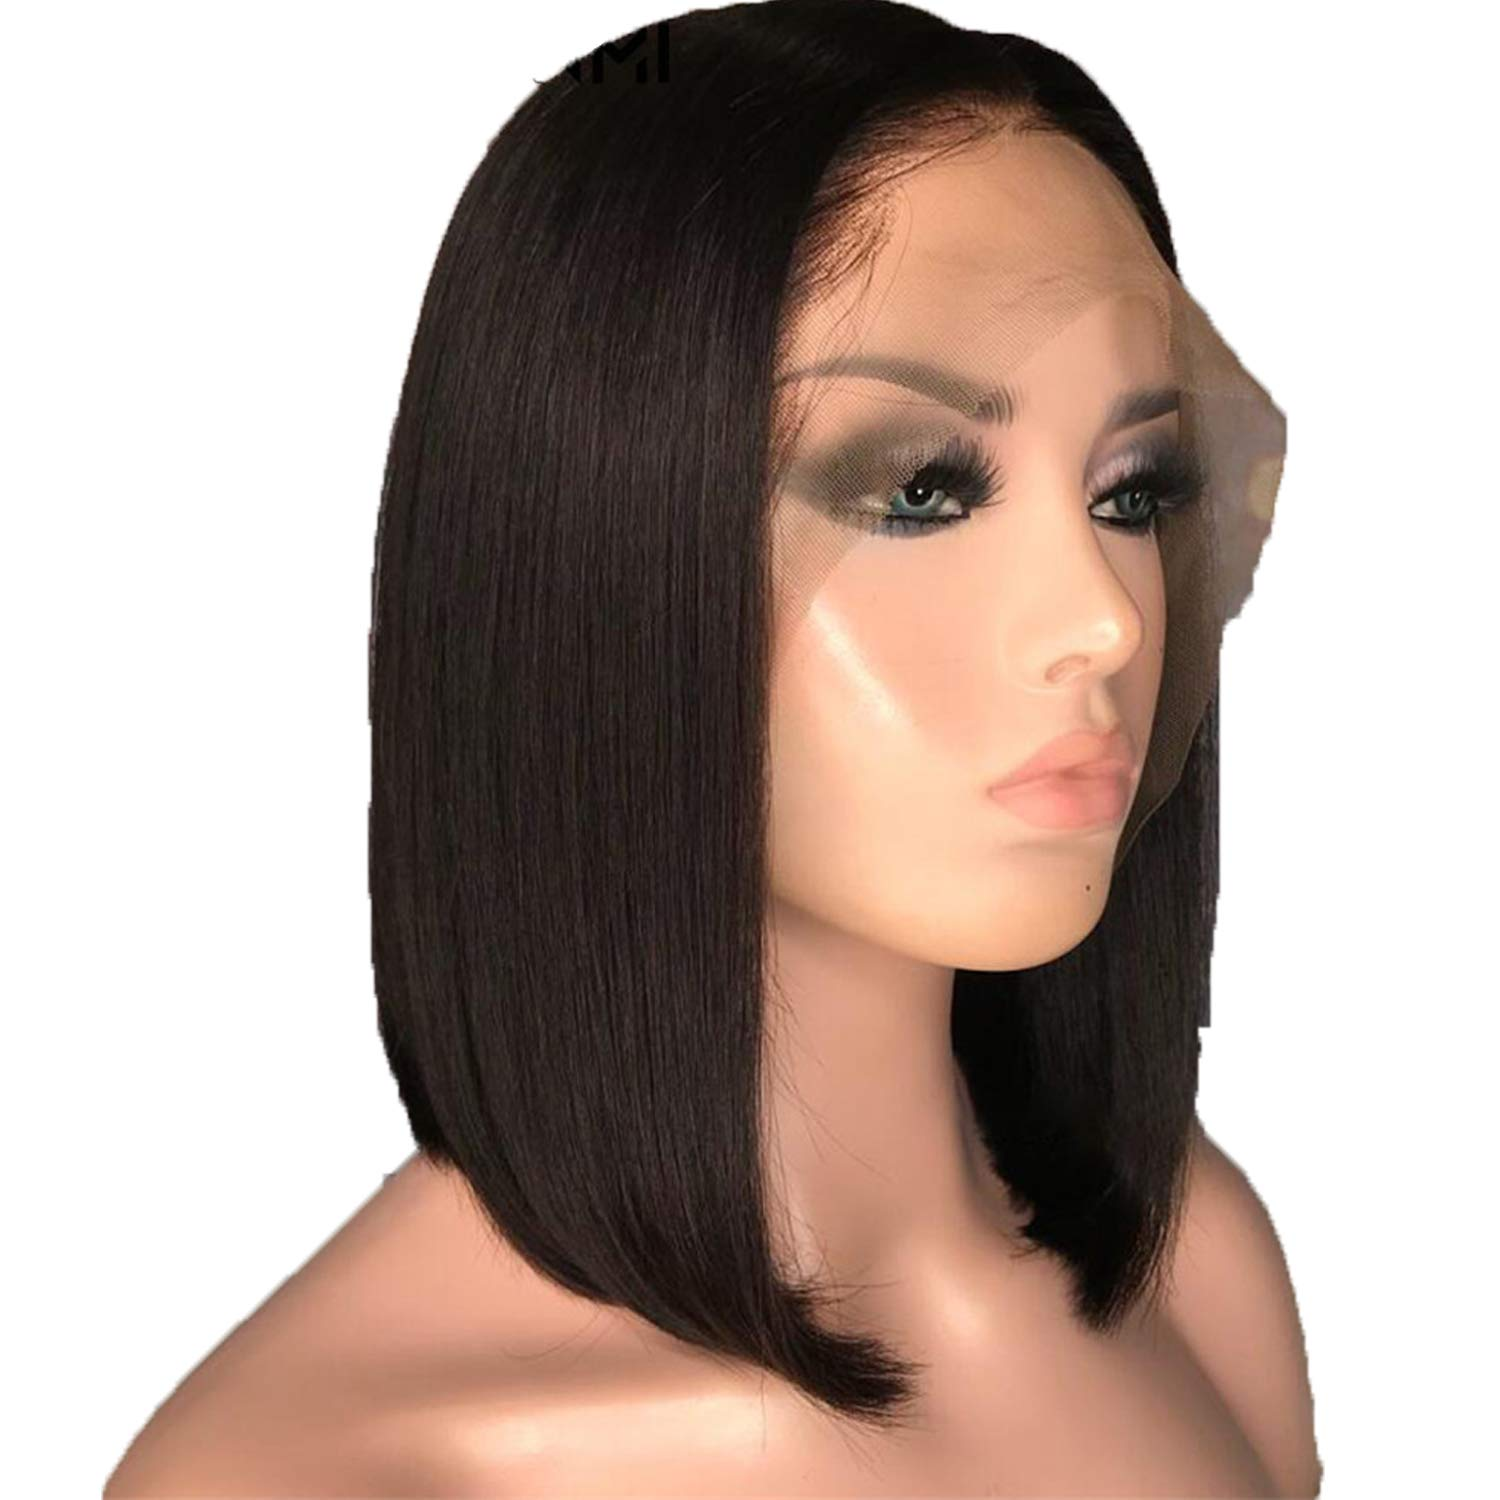 Amazon.com : Full Lace Front Wigs, Goaup